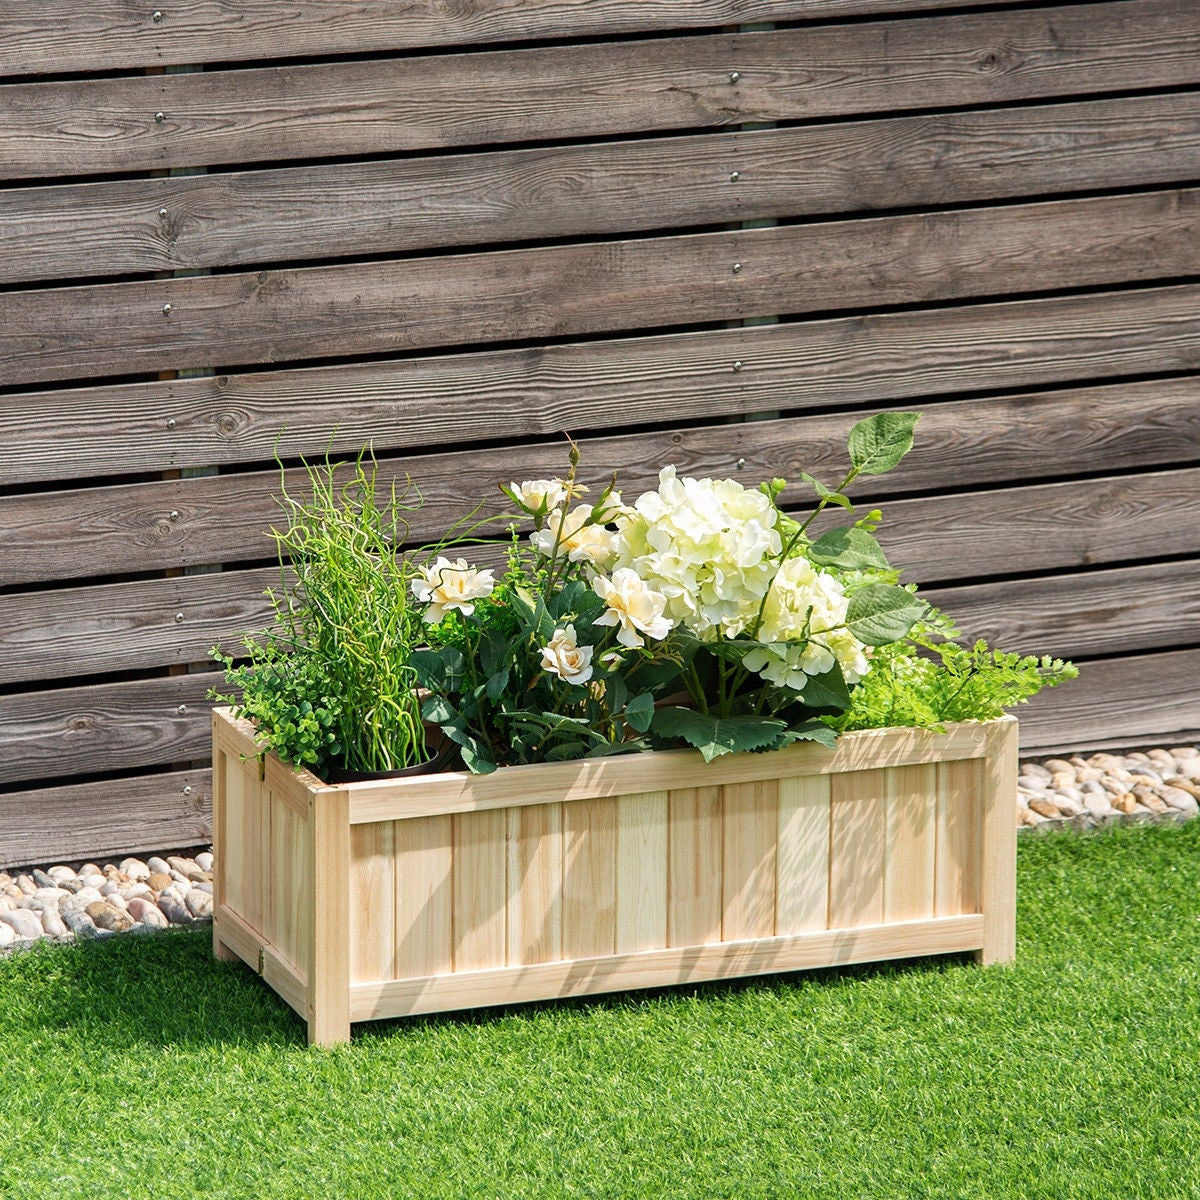 Shop Costway Rectangle Wood Flower Planter Box Portable Raised Vegetable Patio Lawn Garden folding - as pic - Free Shipping Today - Overstock - 22539587